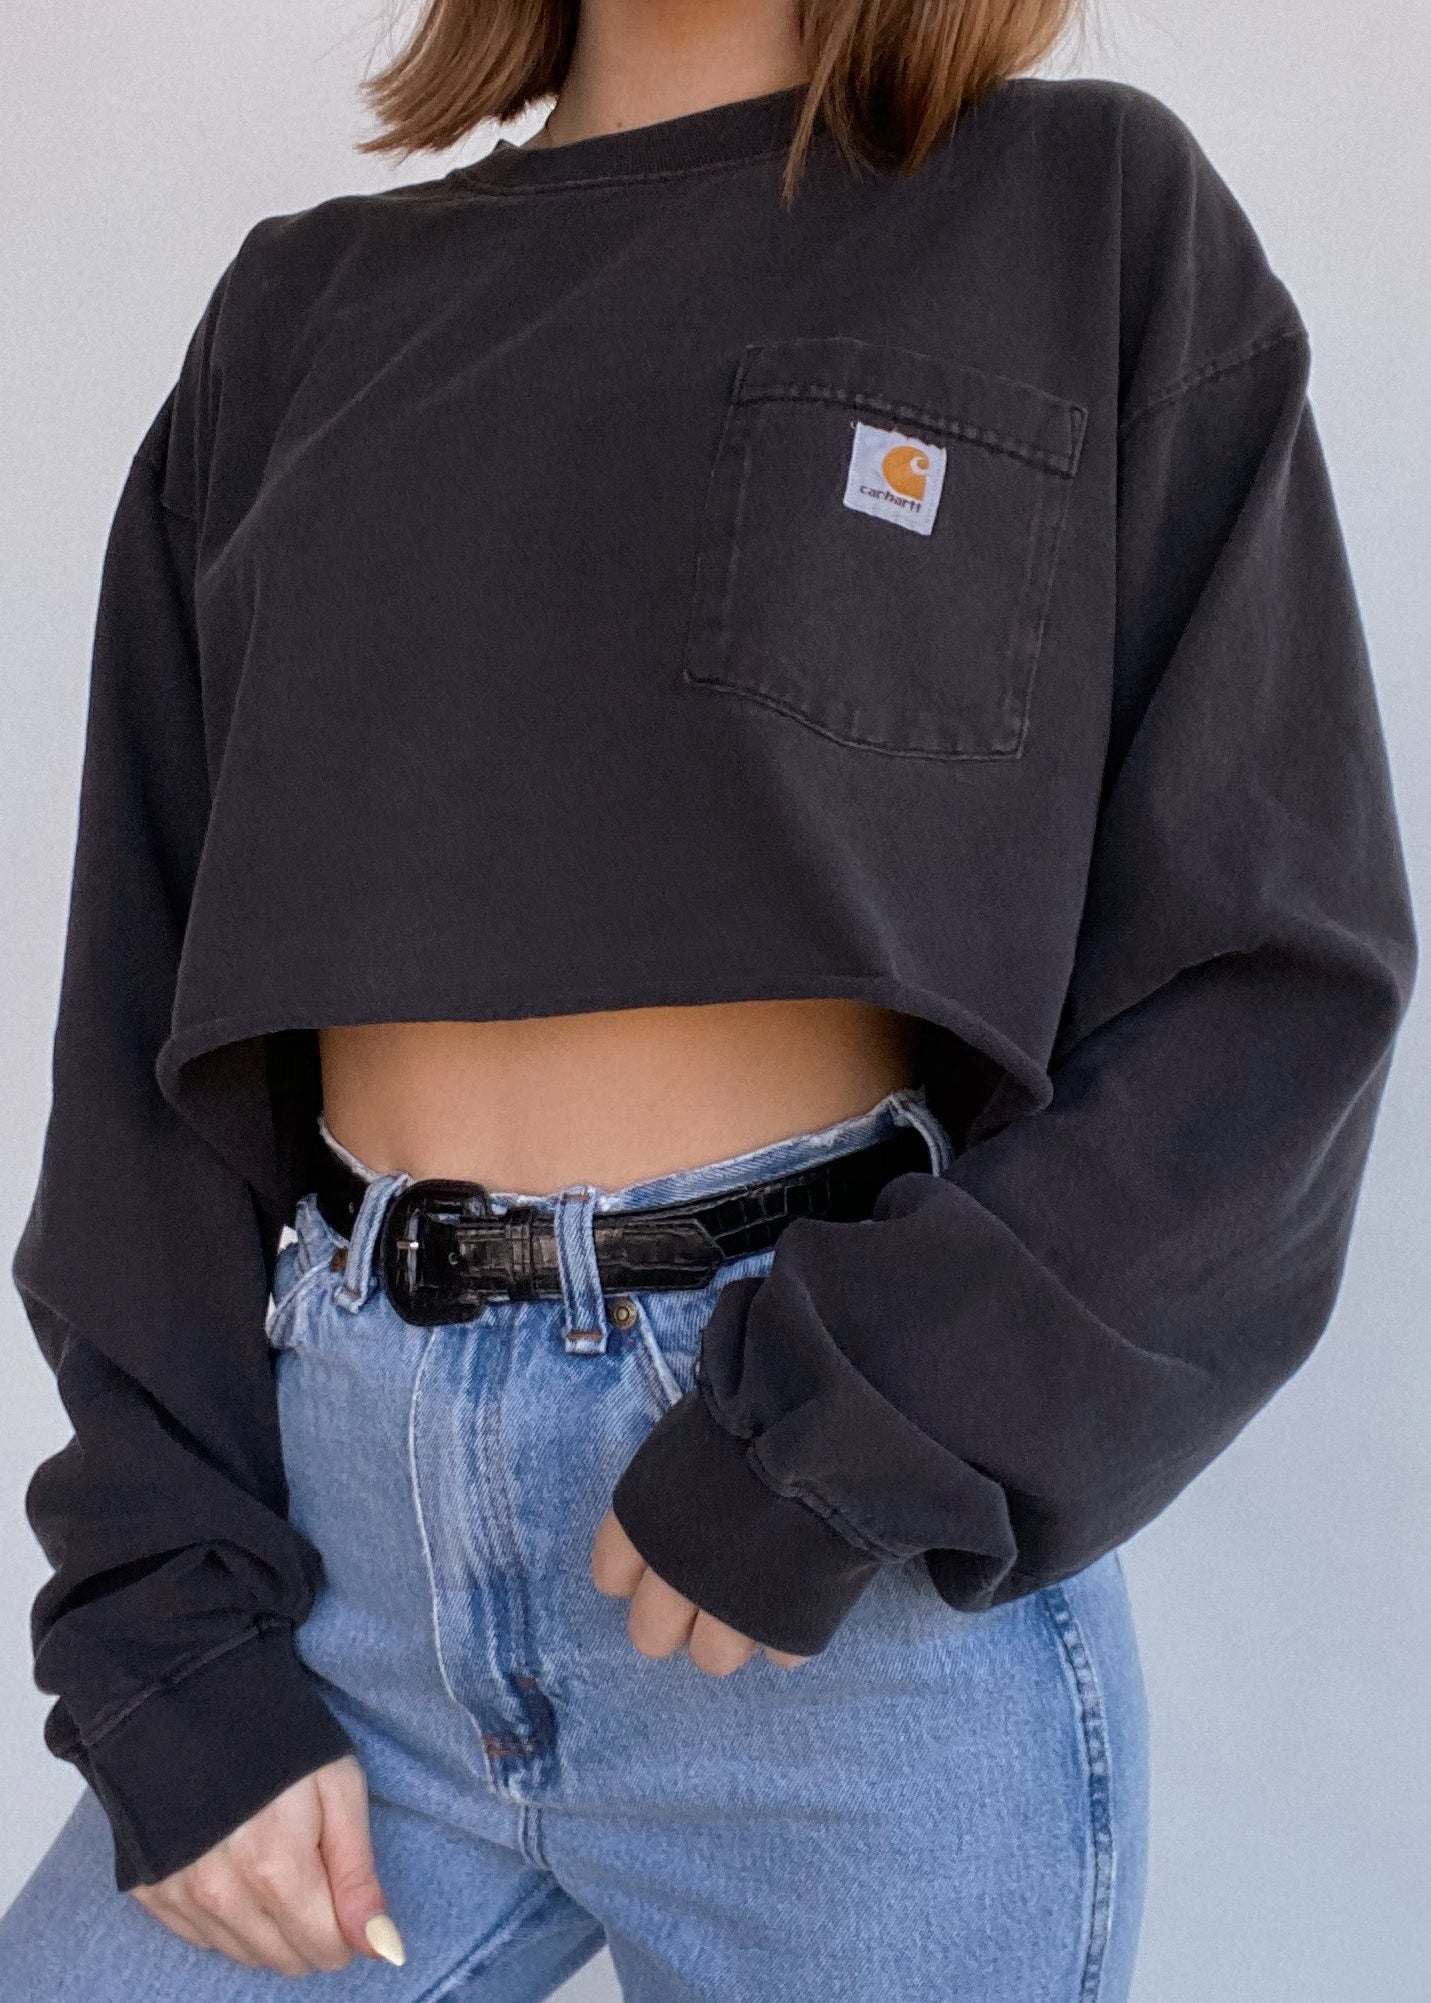 Carhartt Long Sleeve